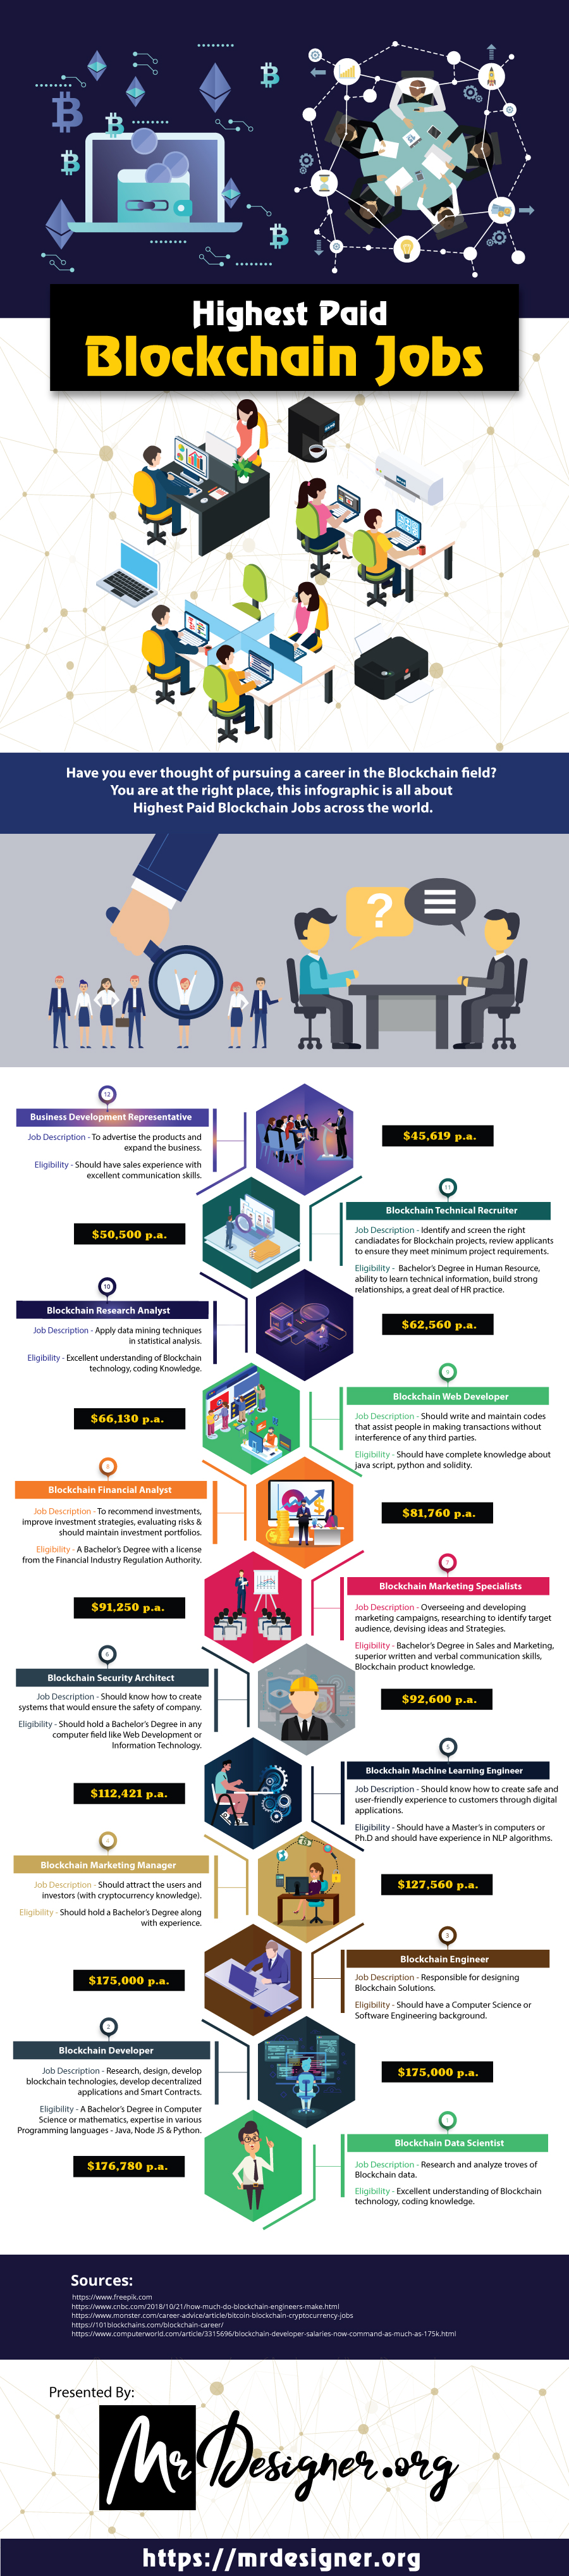 Best Blockchain Jobs Infographic Image